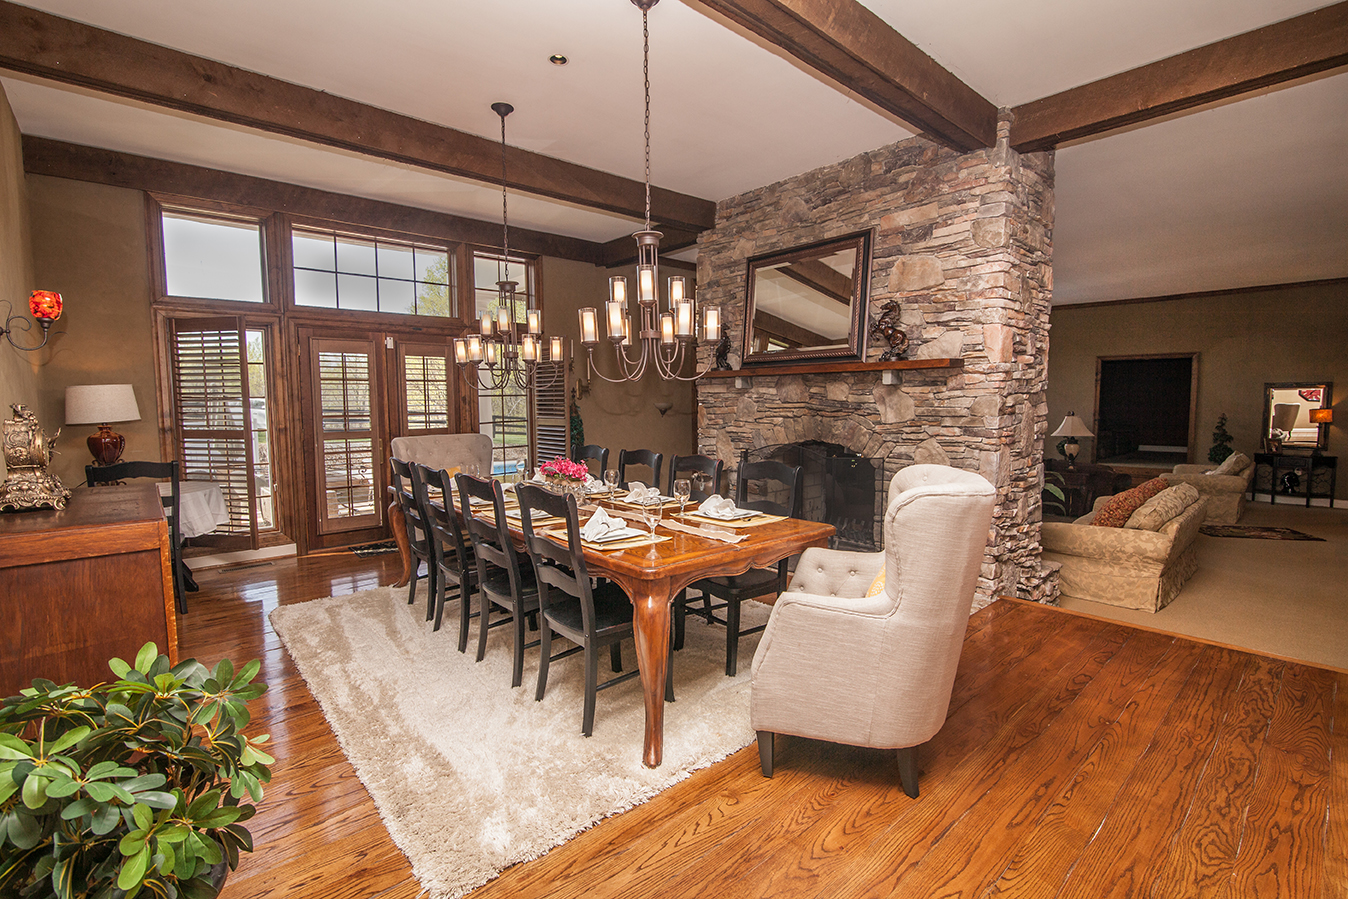 Lead To The Gracious Formal Dining Room 21 X 15 Featuring Hardwood Floors Beamed Ceiling Stone Fireplace And French Doors Opening Covered